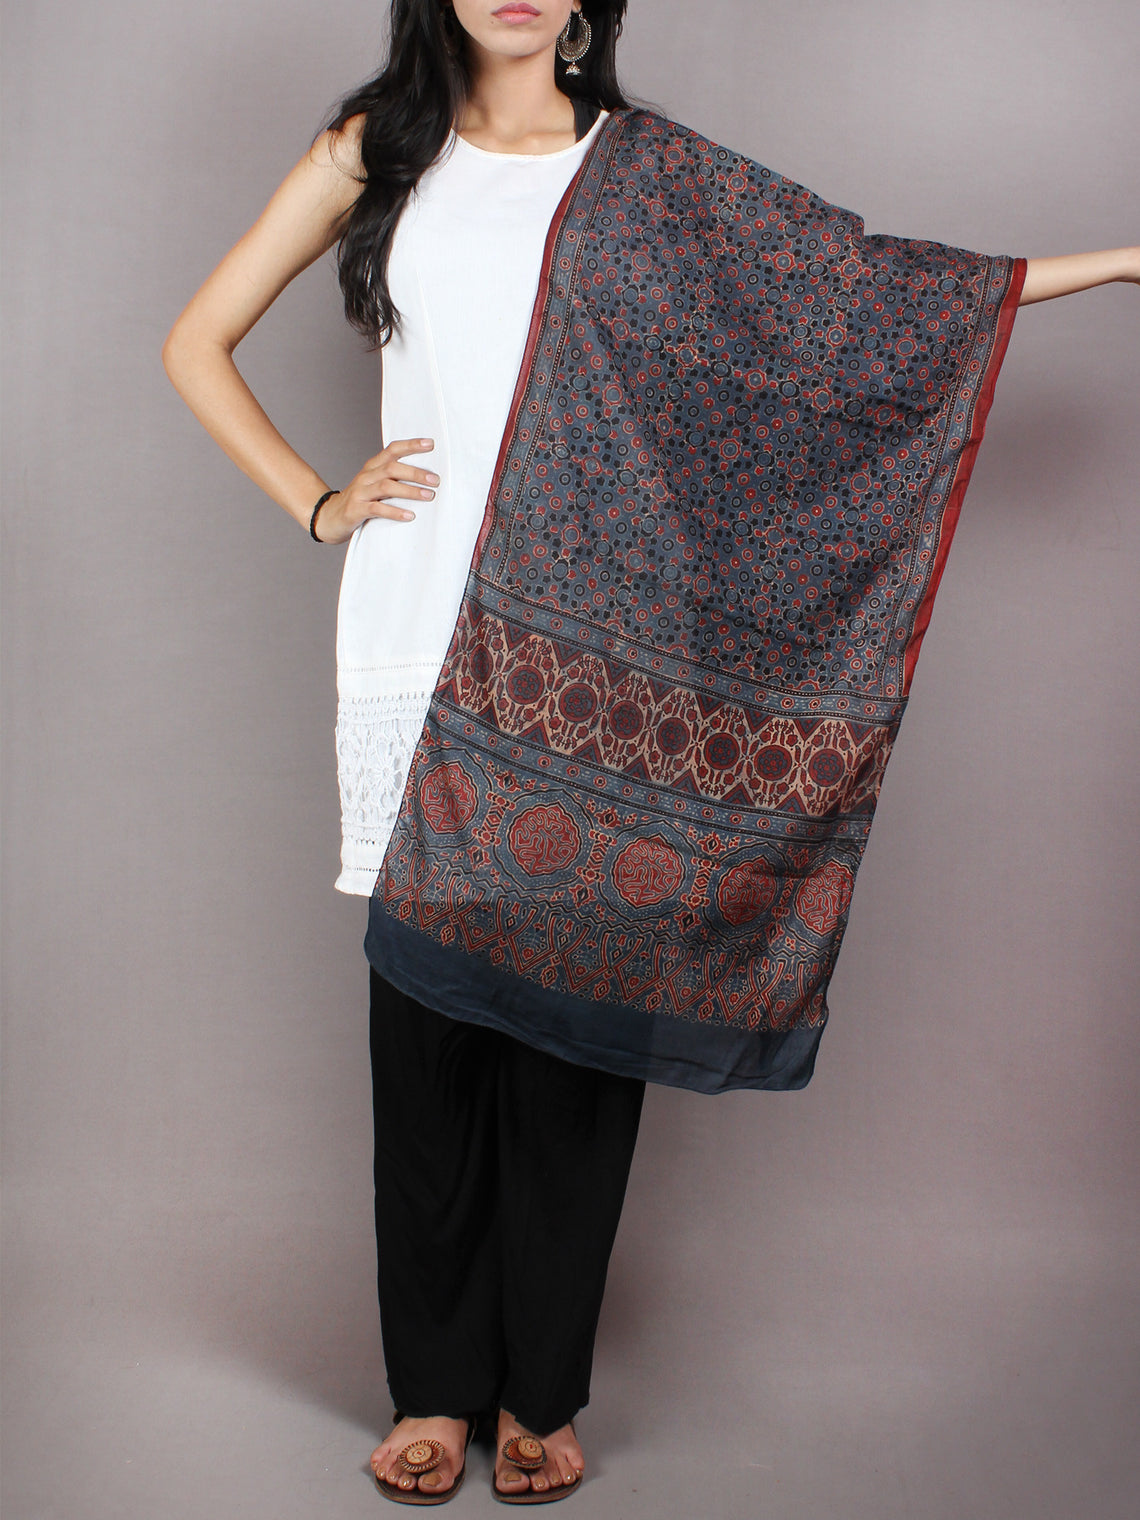 Blue Red Black Mughal Nakashi Ajrakh Hand Block Printed Cotton Stole - S6317057